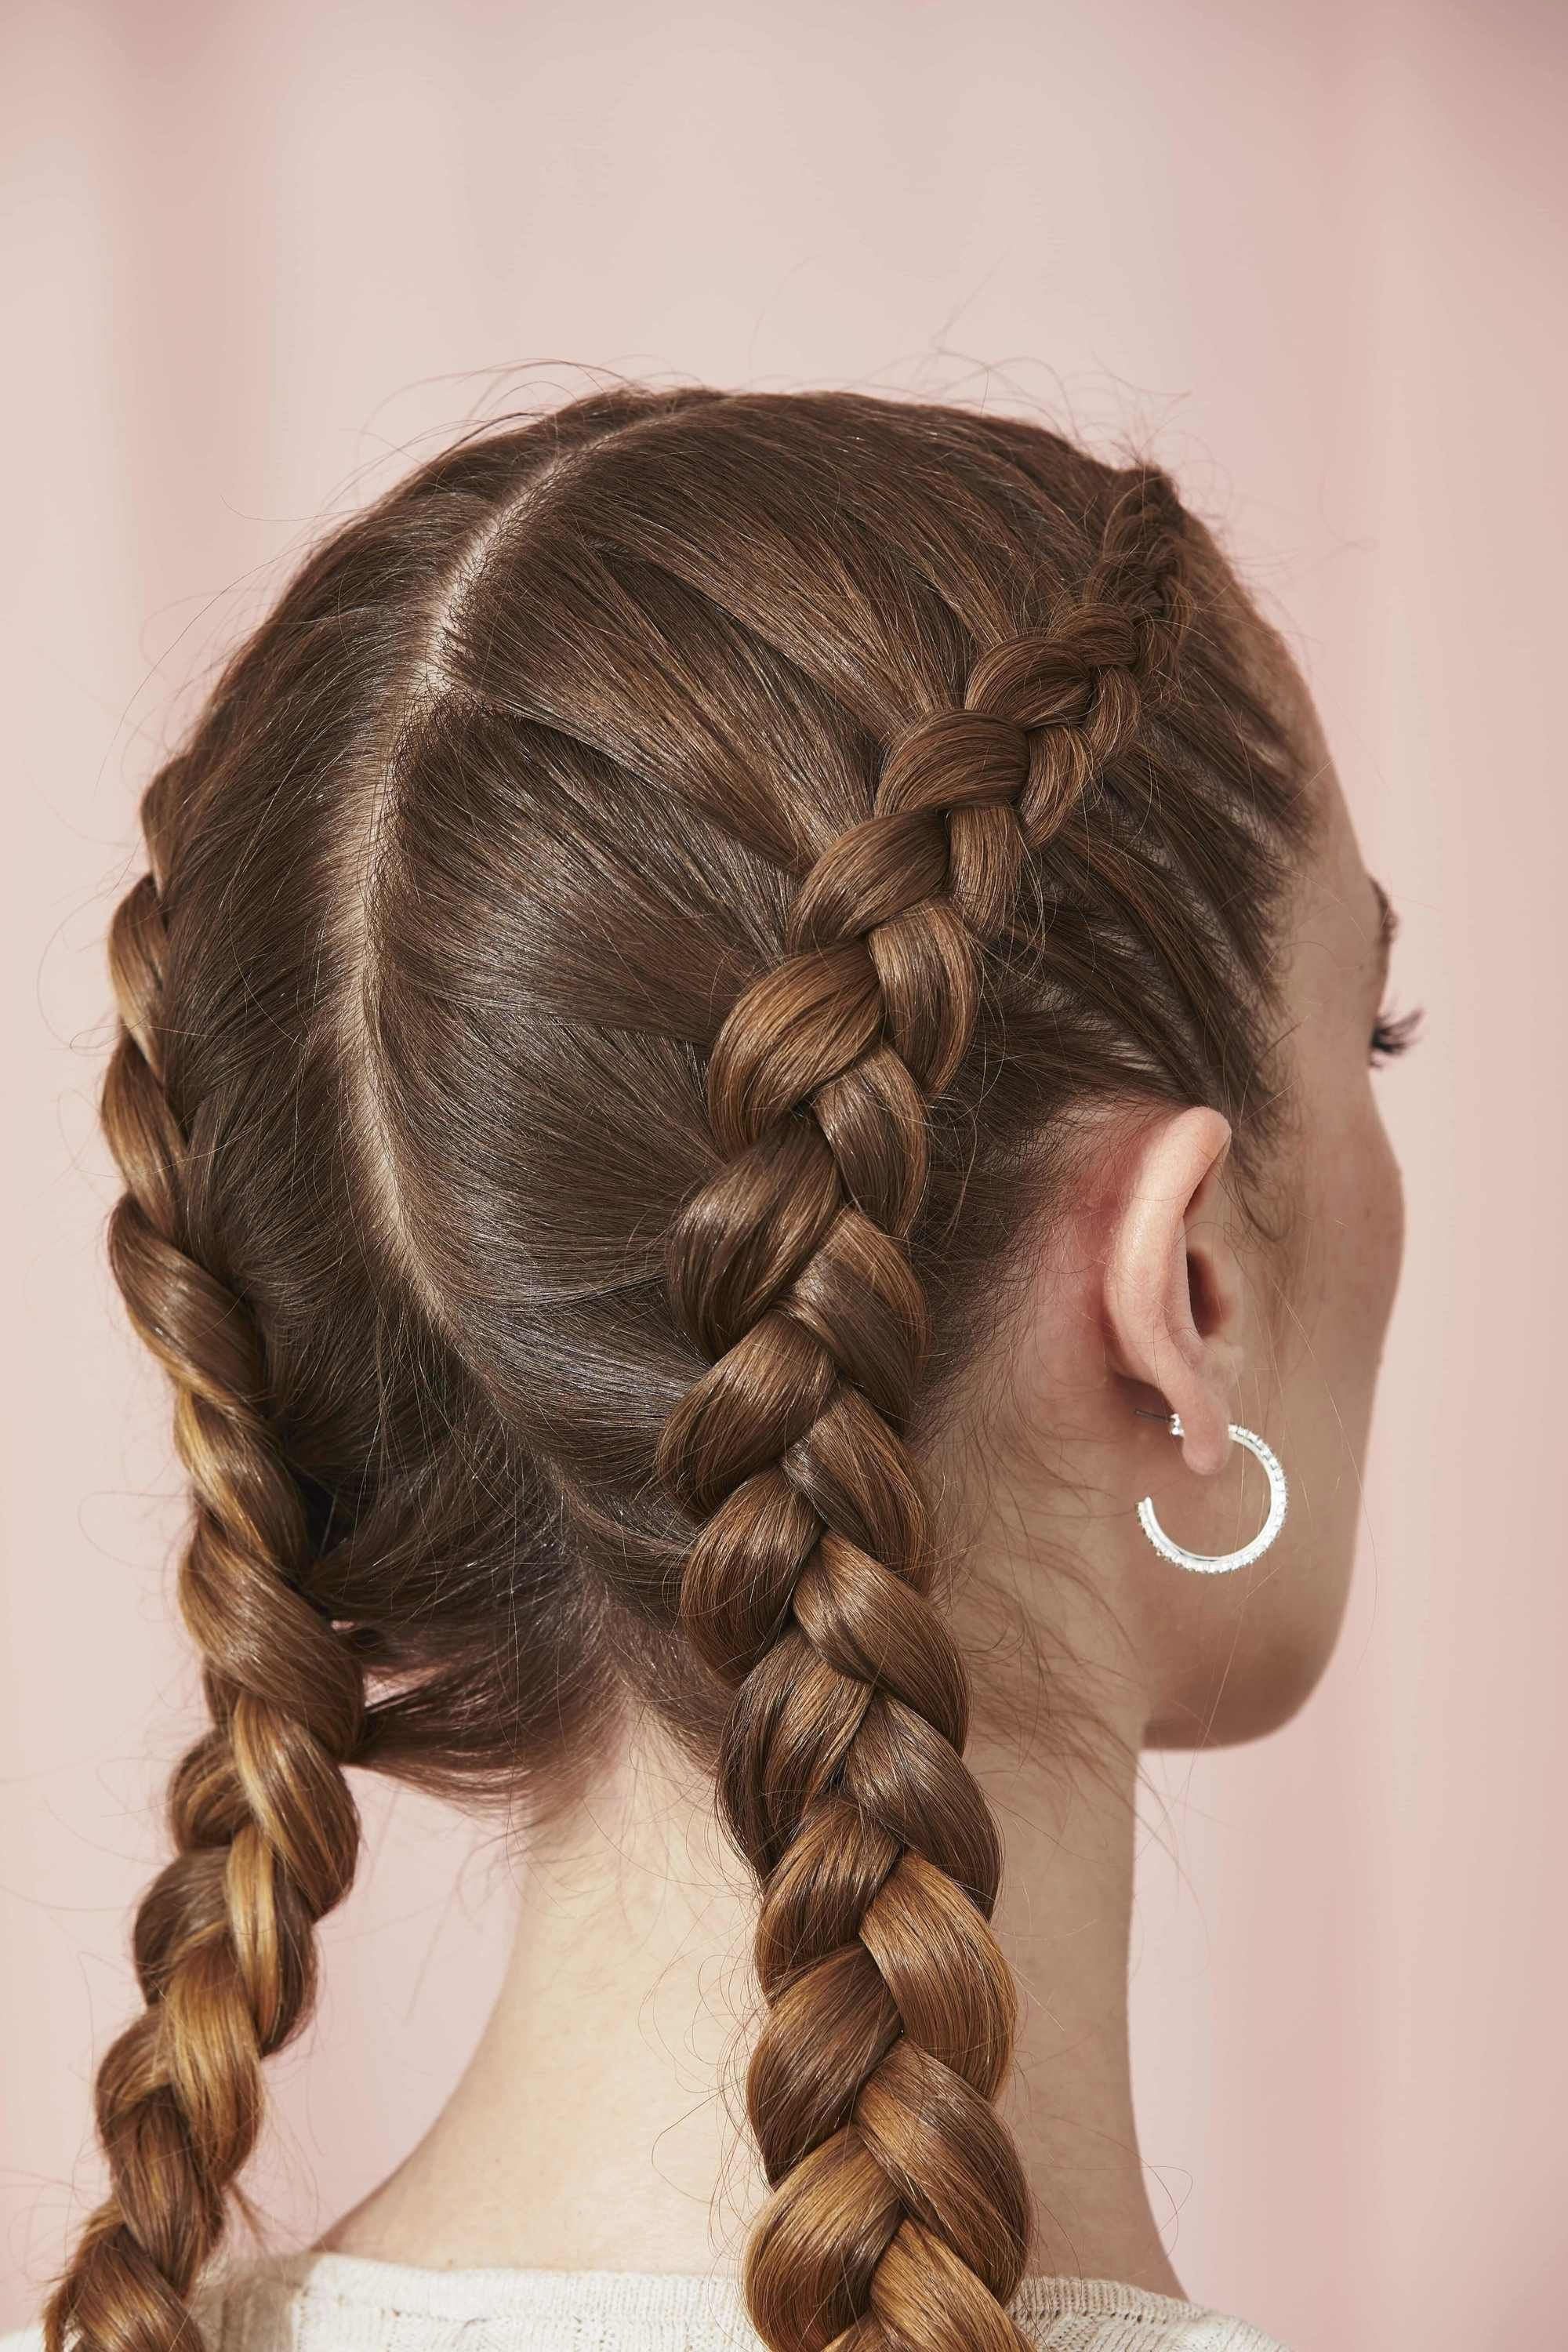 21 Easy Hairstyles For Greasy Hair You Can Wear At Home 1003 In 2020 Greasy Hair Hairstyles Hair Styles Braided Hairstyles Easy